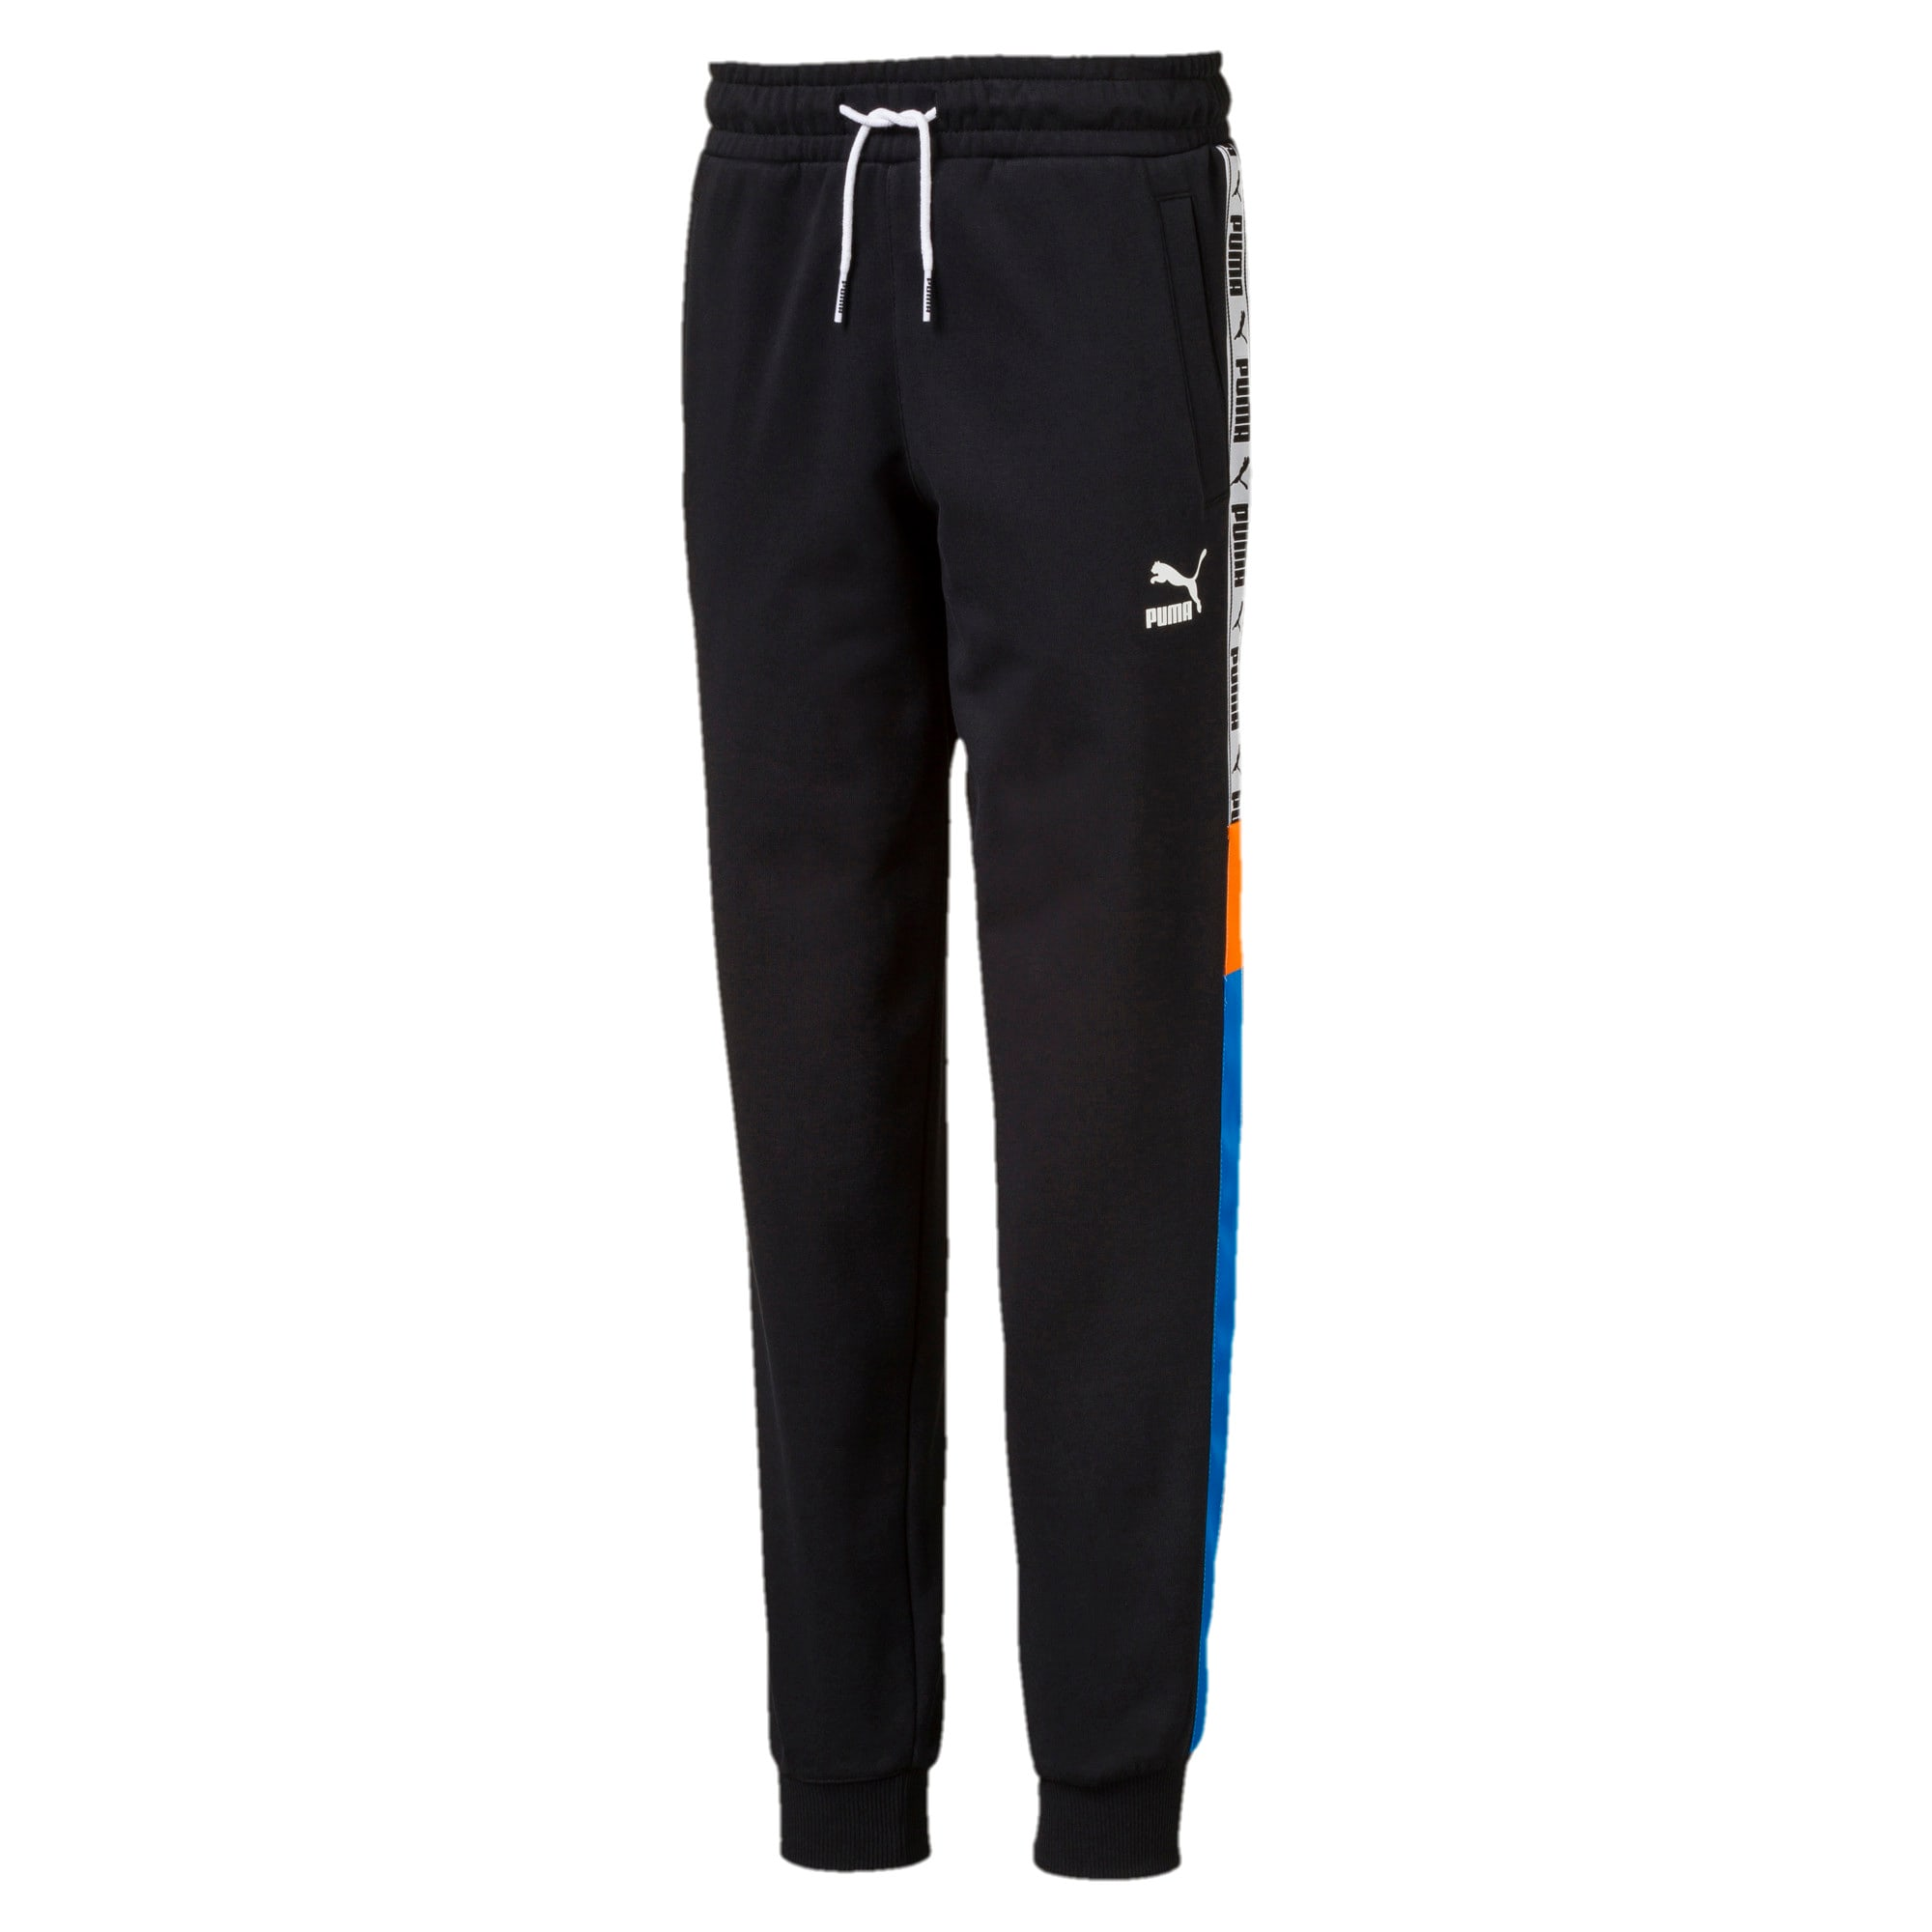 Thumbnail 1 of PUMA XTG Boys' Sweatpants JR, Cotton Black, medium